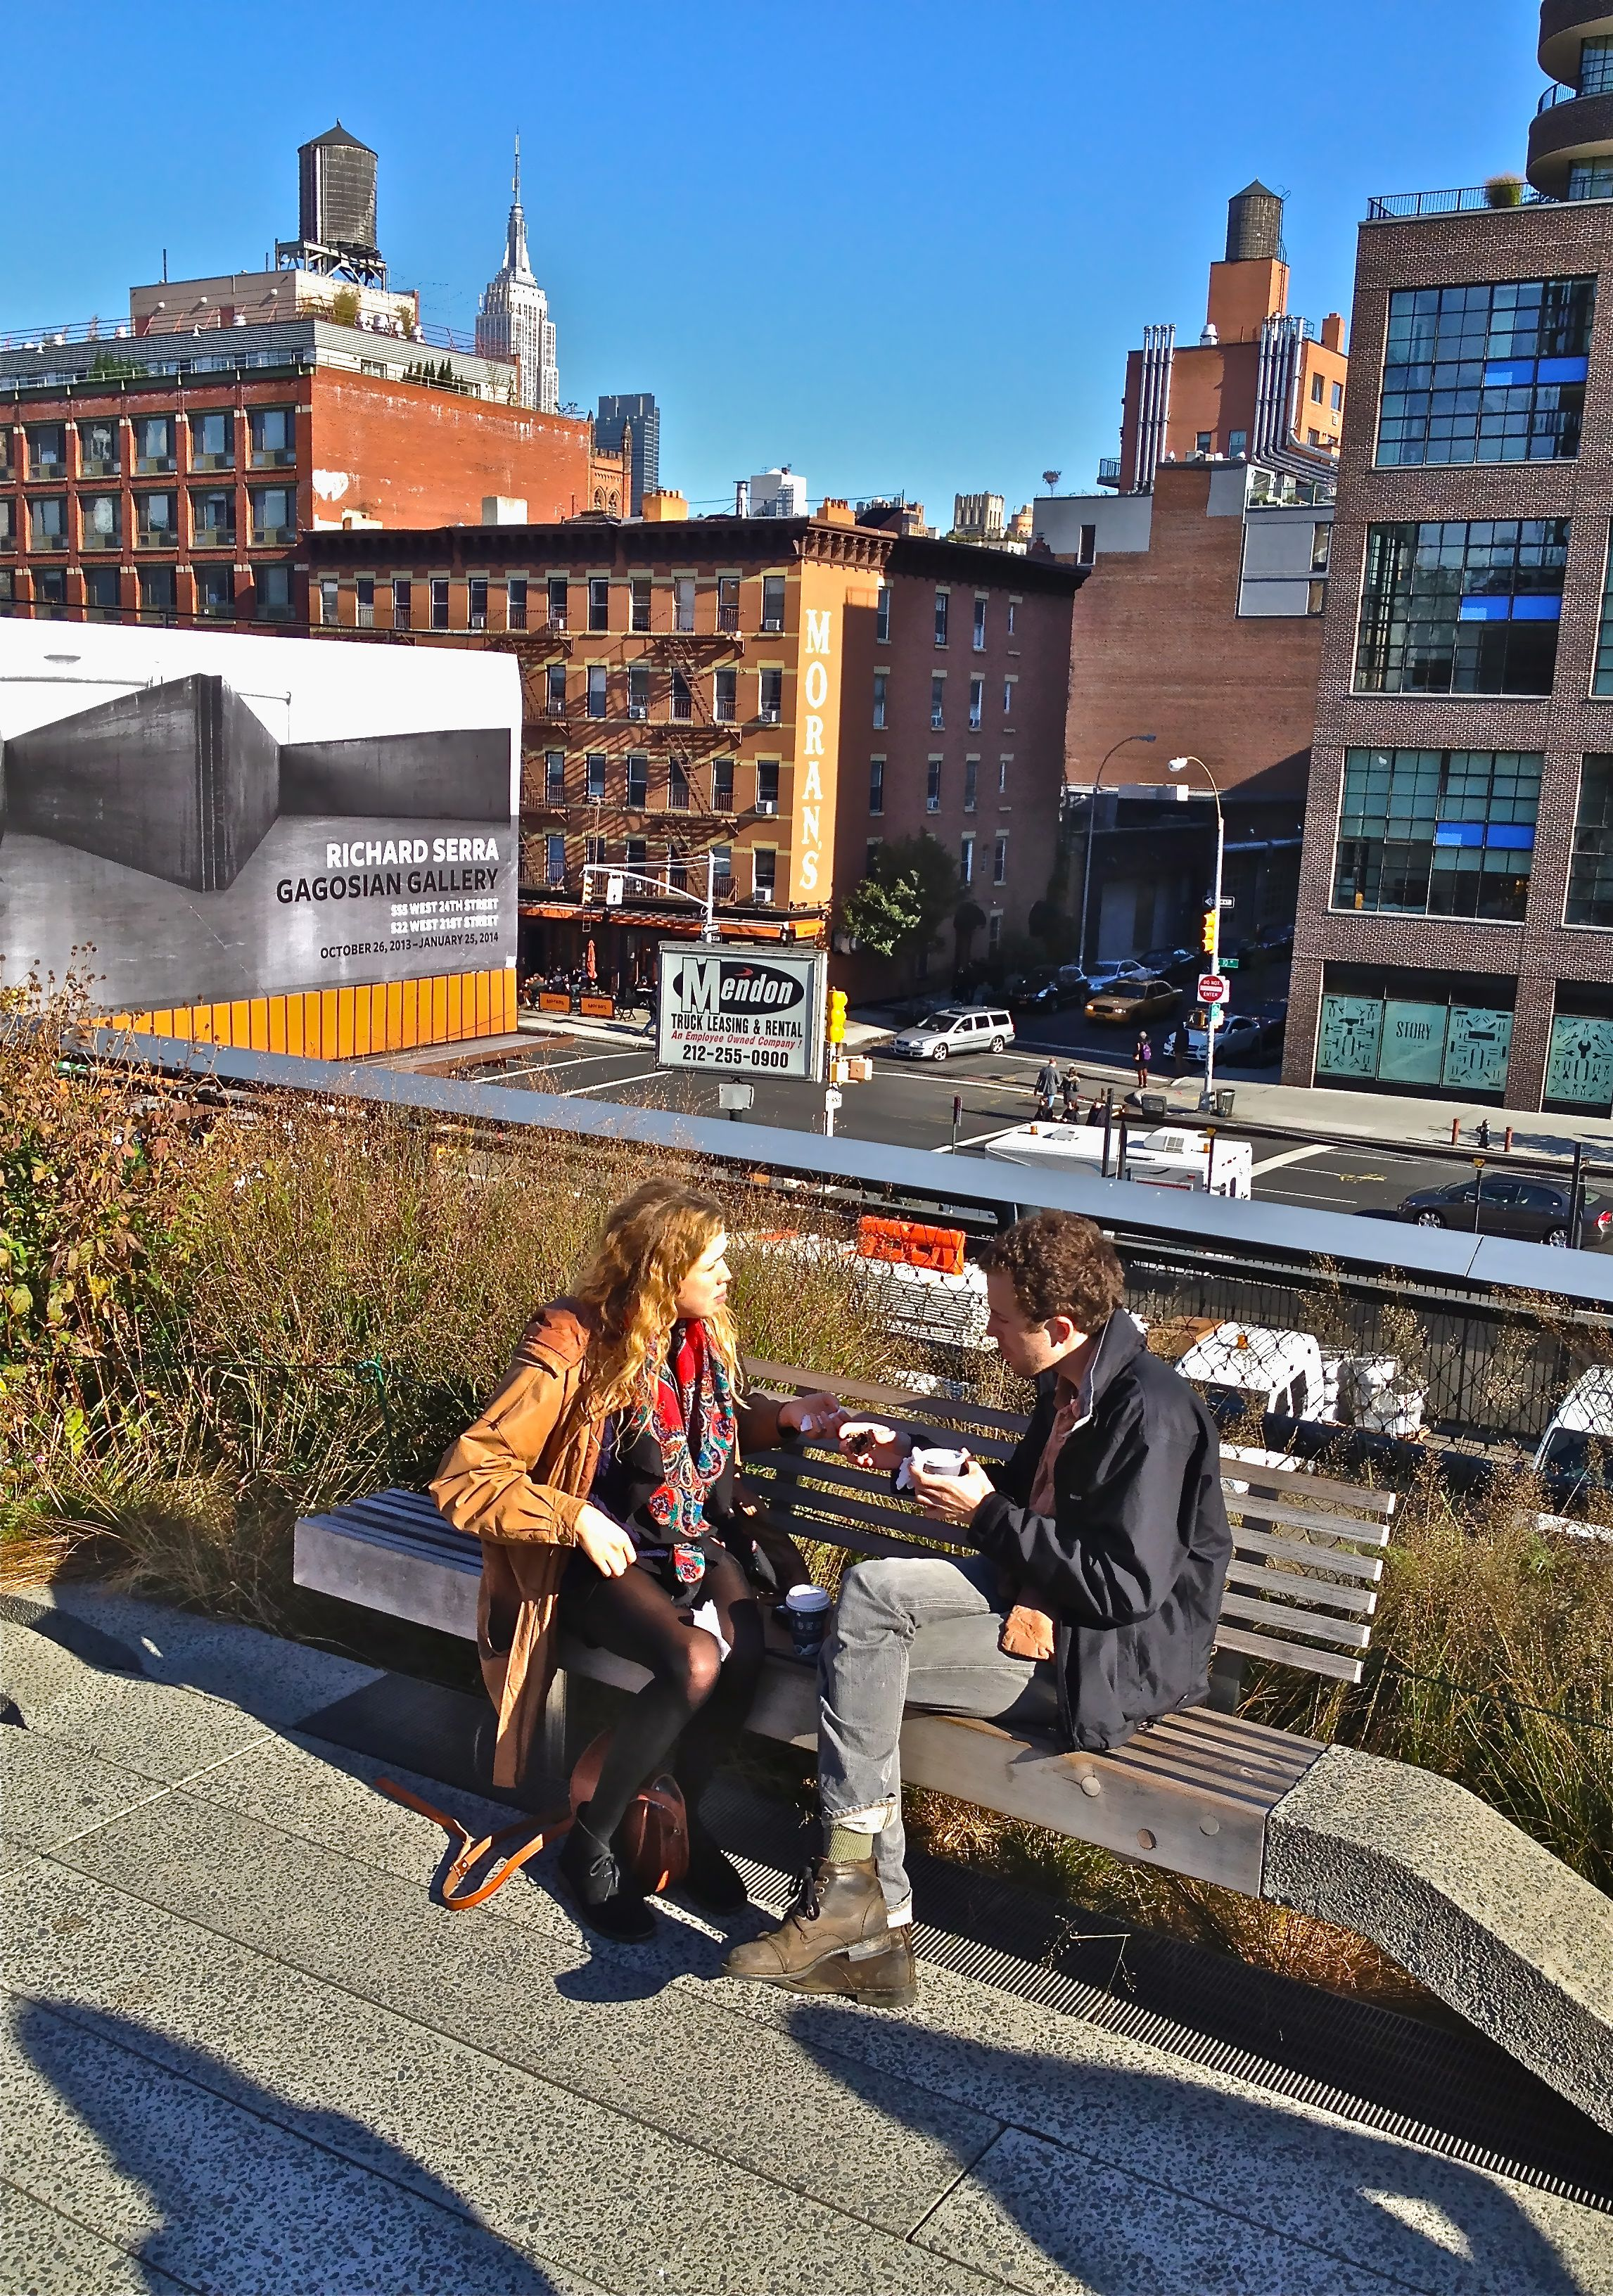 10/26/13 the high line.